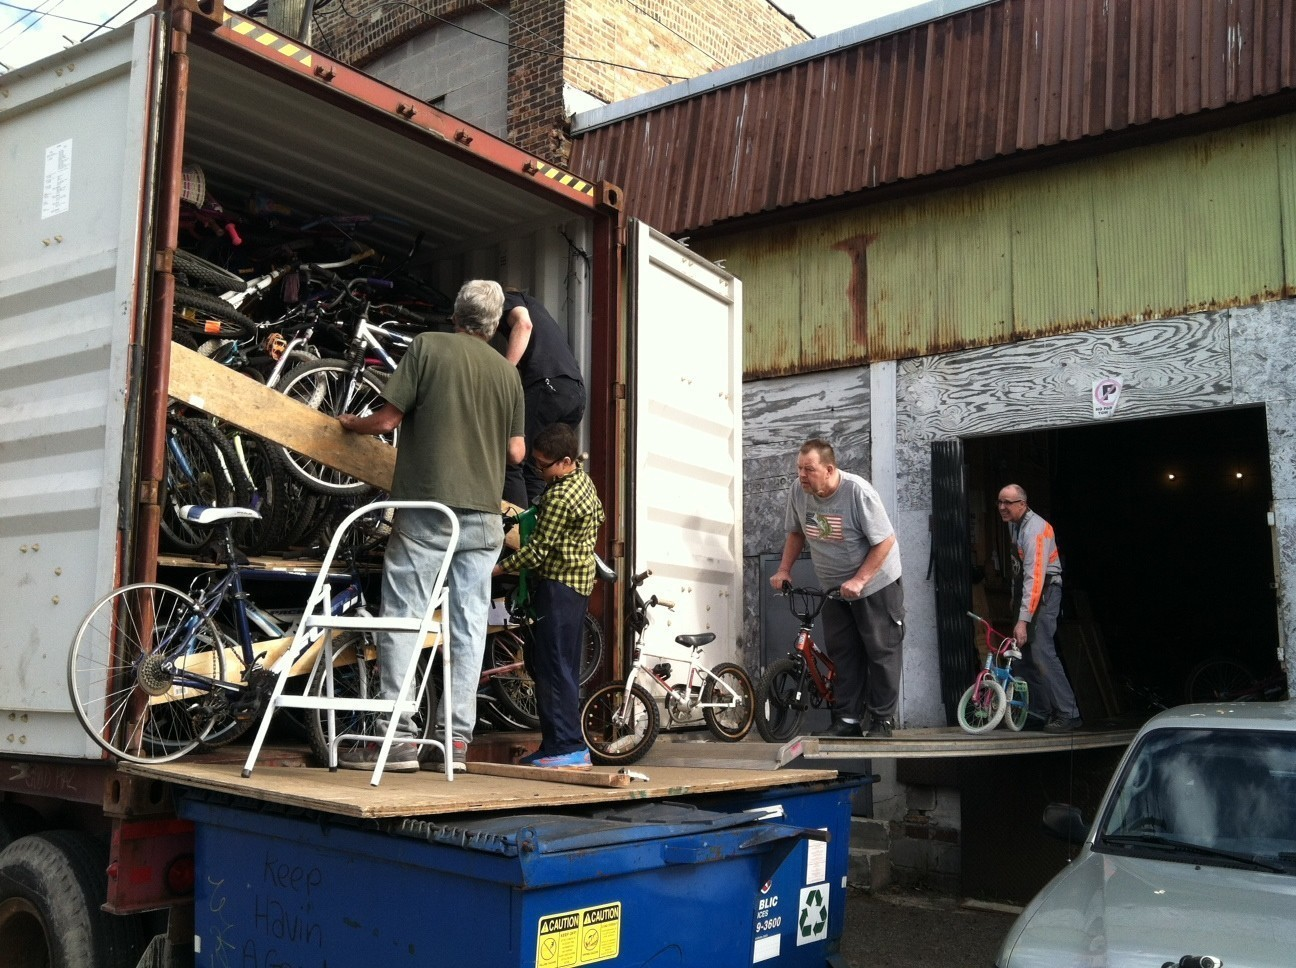 Donate Bikes In Joliet Il Donate Used Bikes in Flossmoor